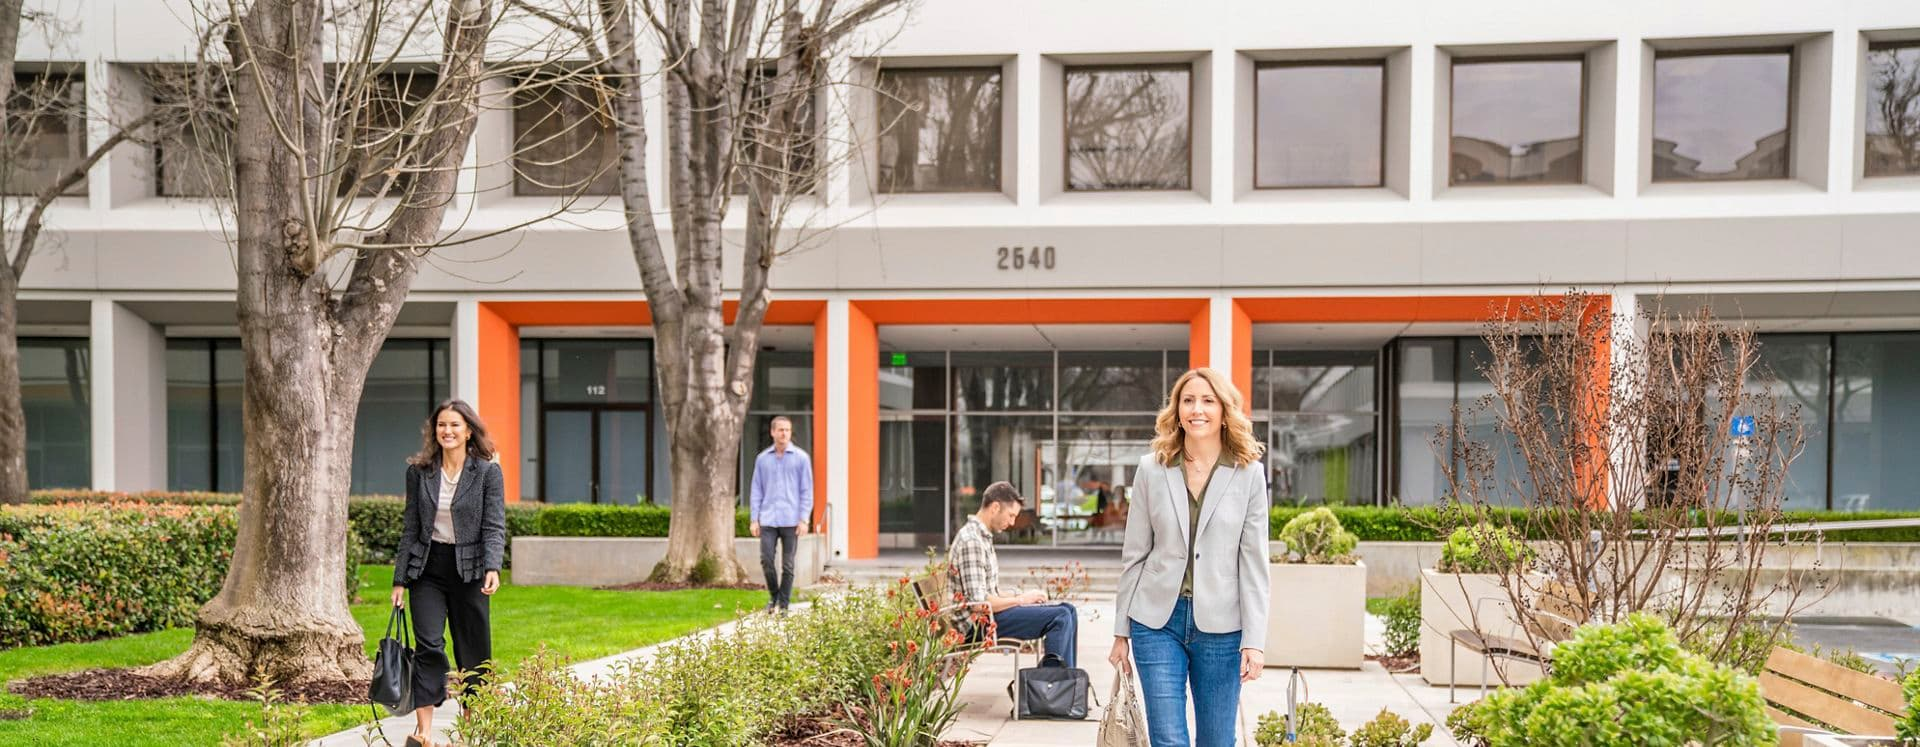 Lifestyle photography of the building entrance of SIlicon Valley Center - 2540 N First Street in San Jose, CA